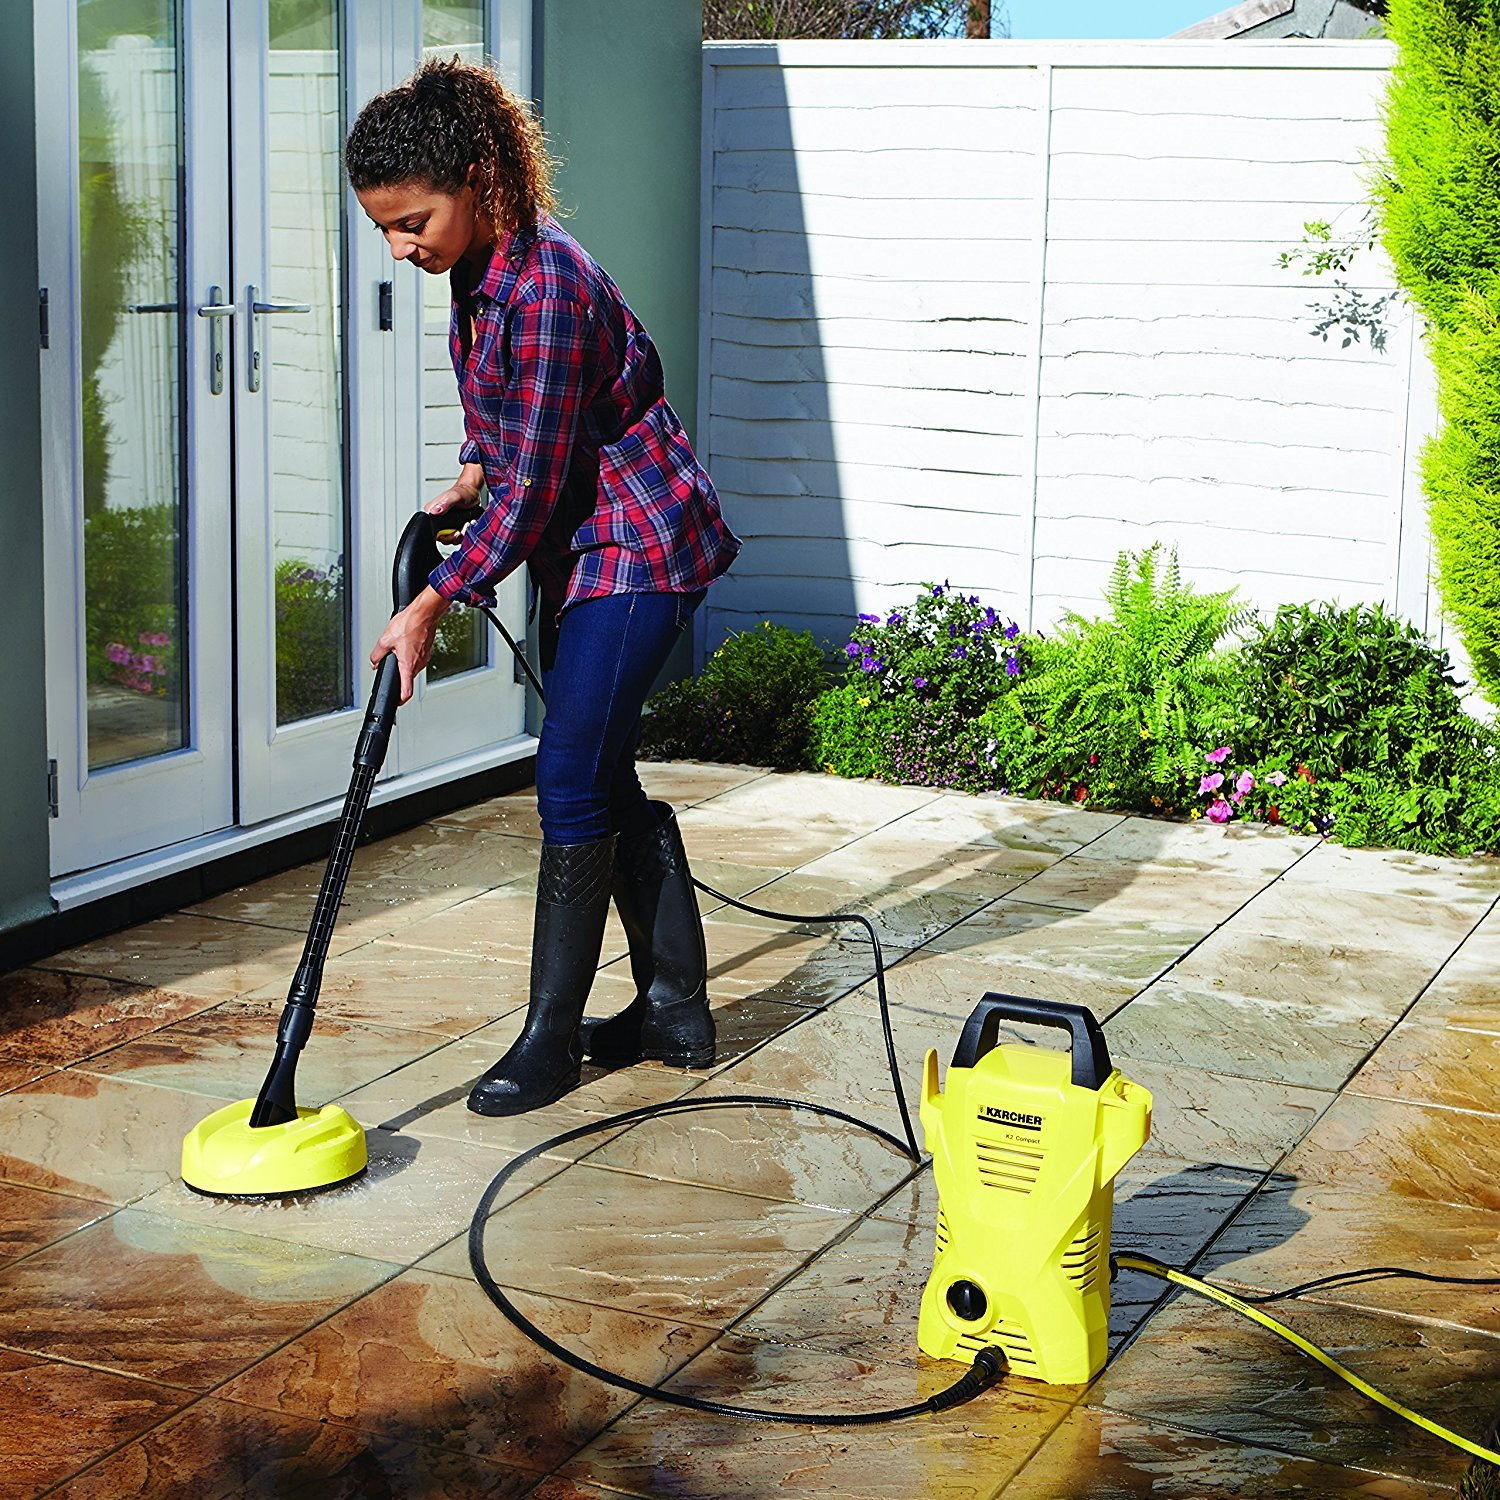 5 Karcher Pressure Washers: Reviewed, Compared & Rated